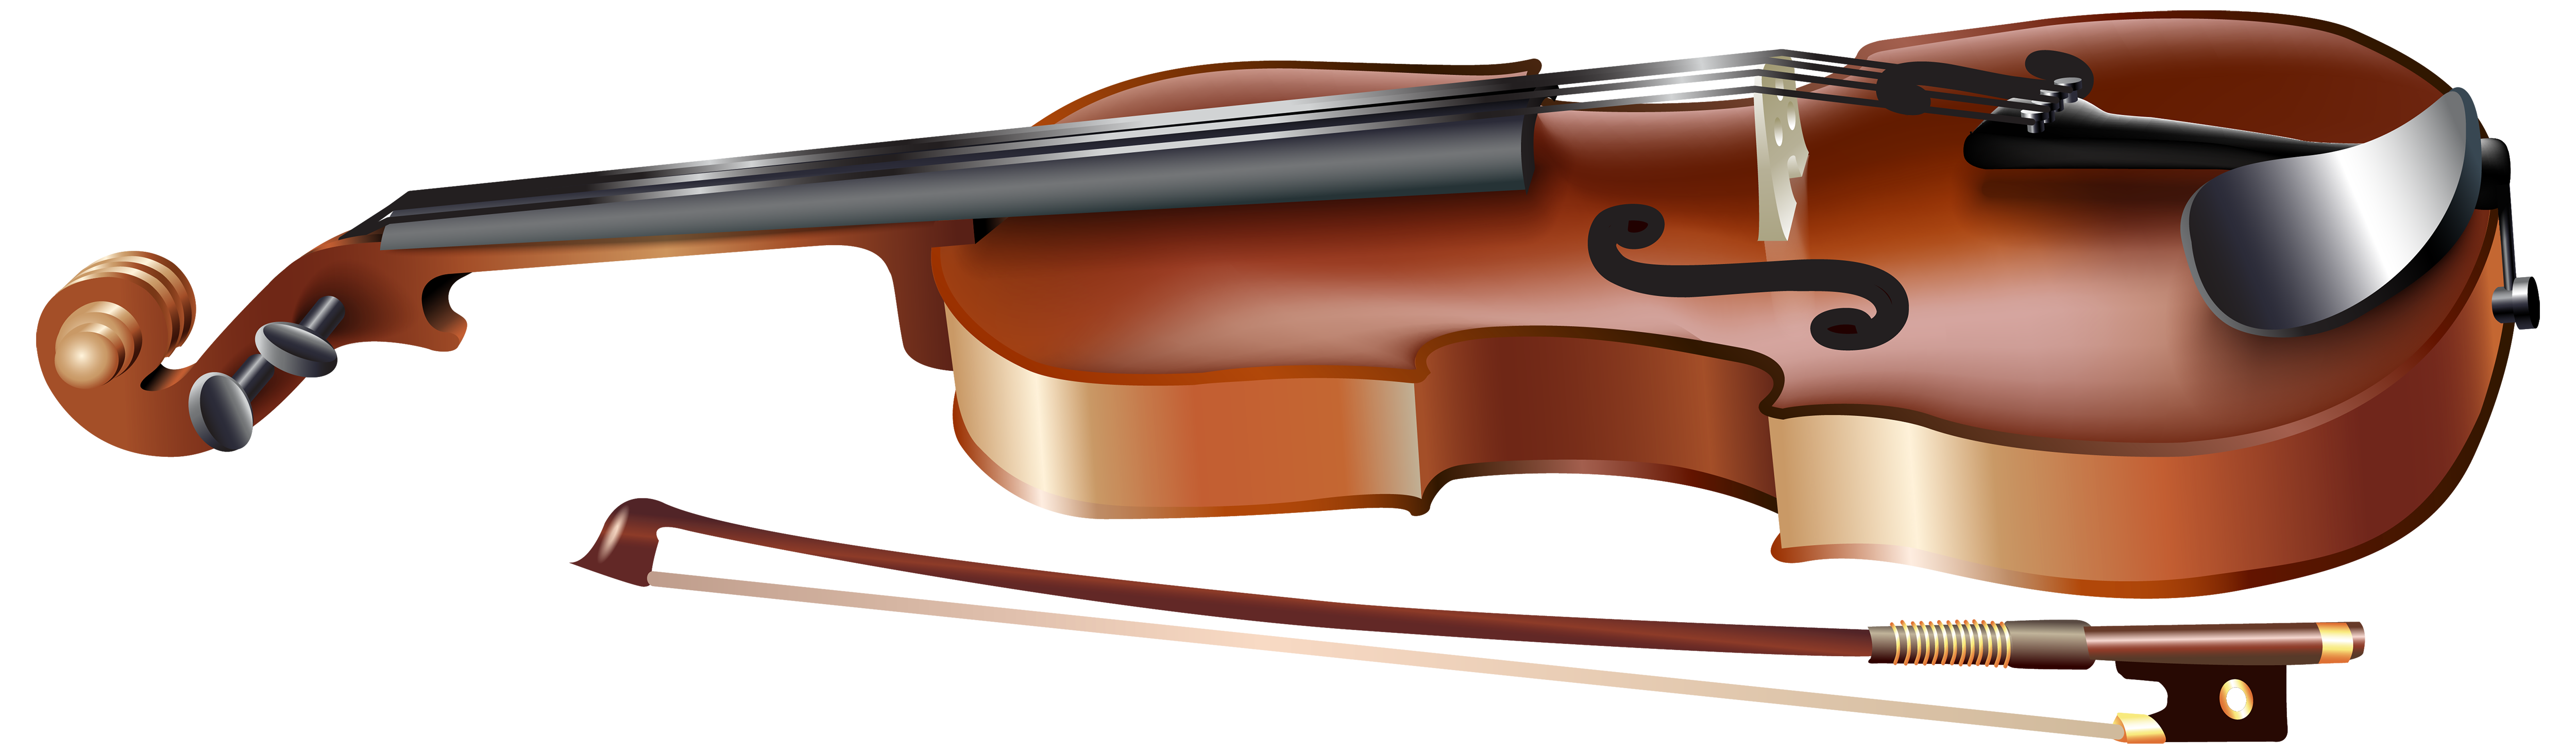 Name clipart musical instruments. Violin with bow png